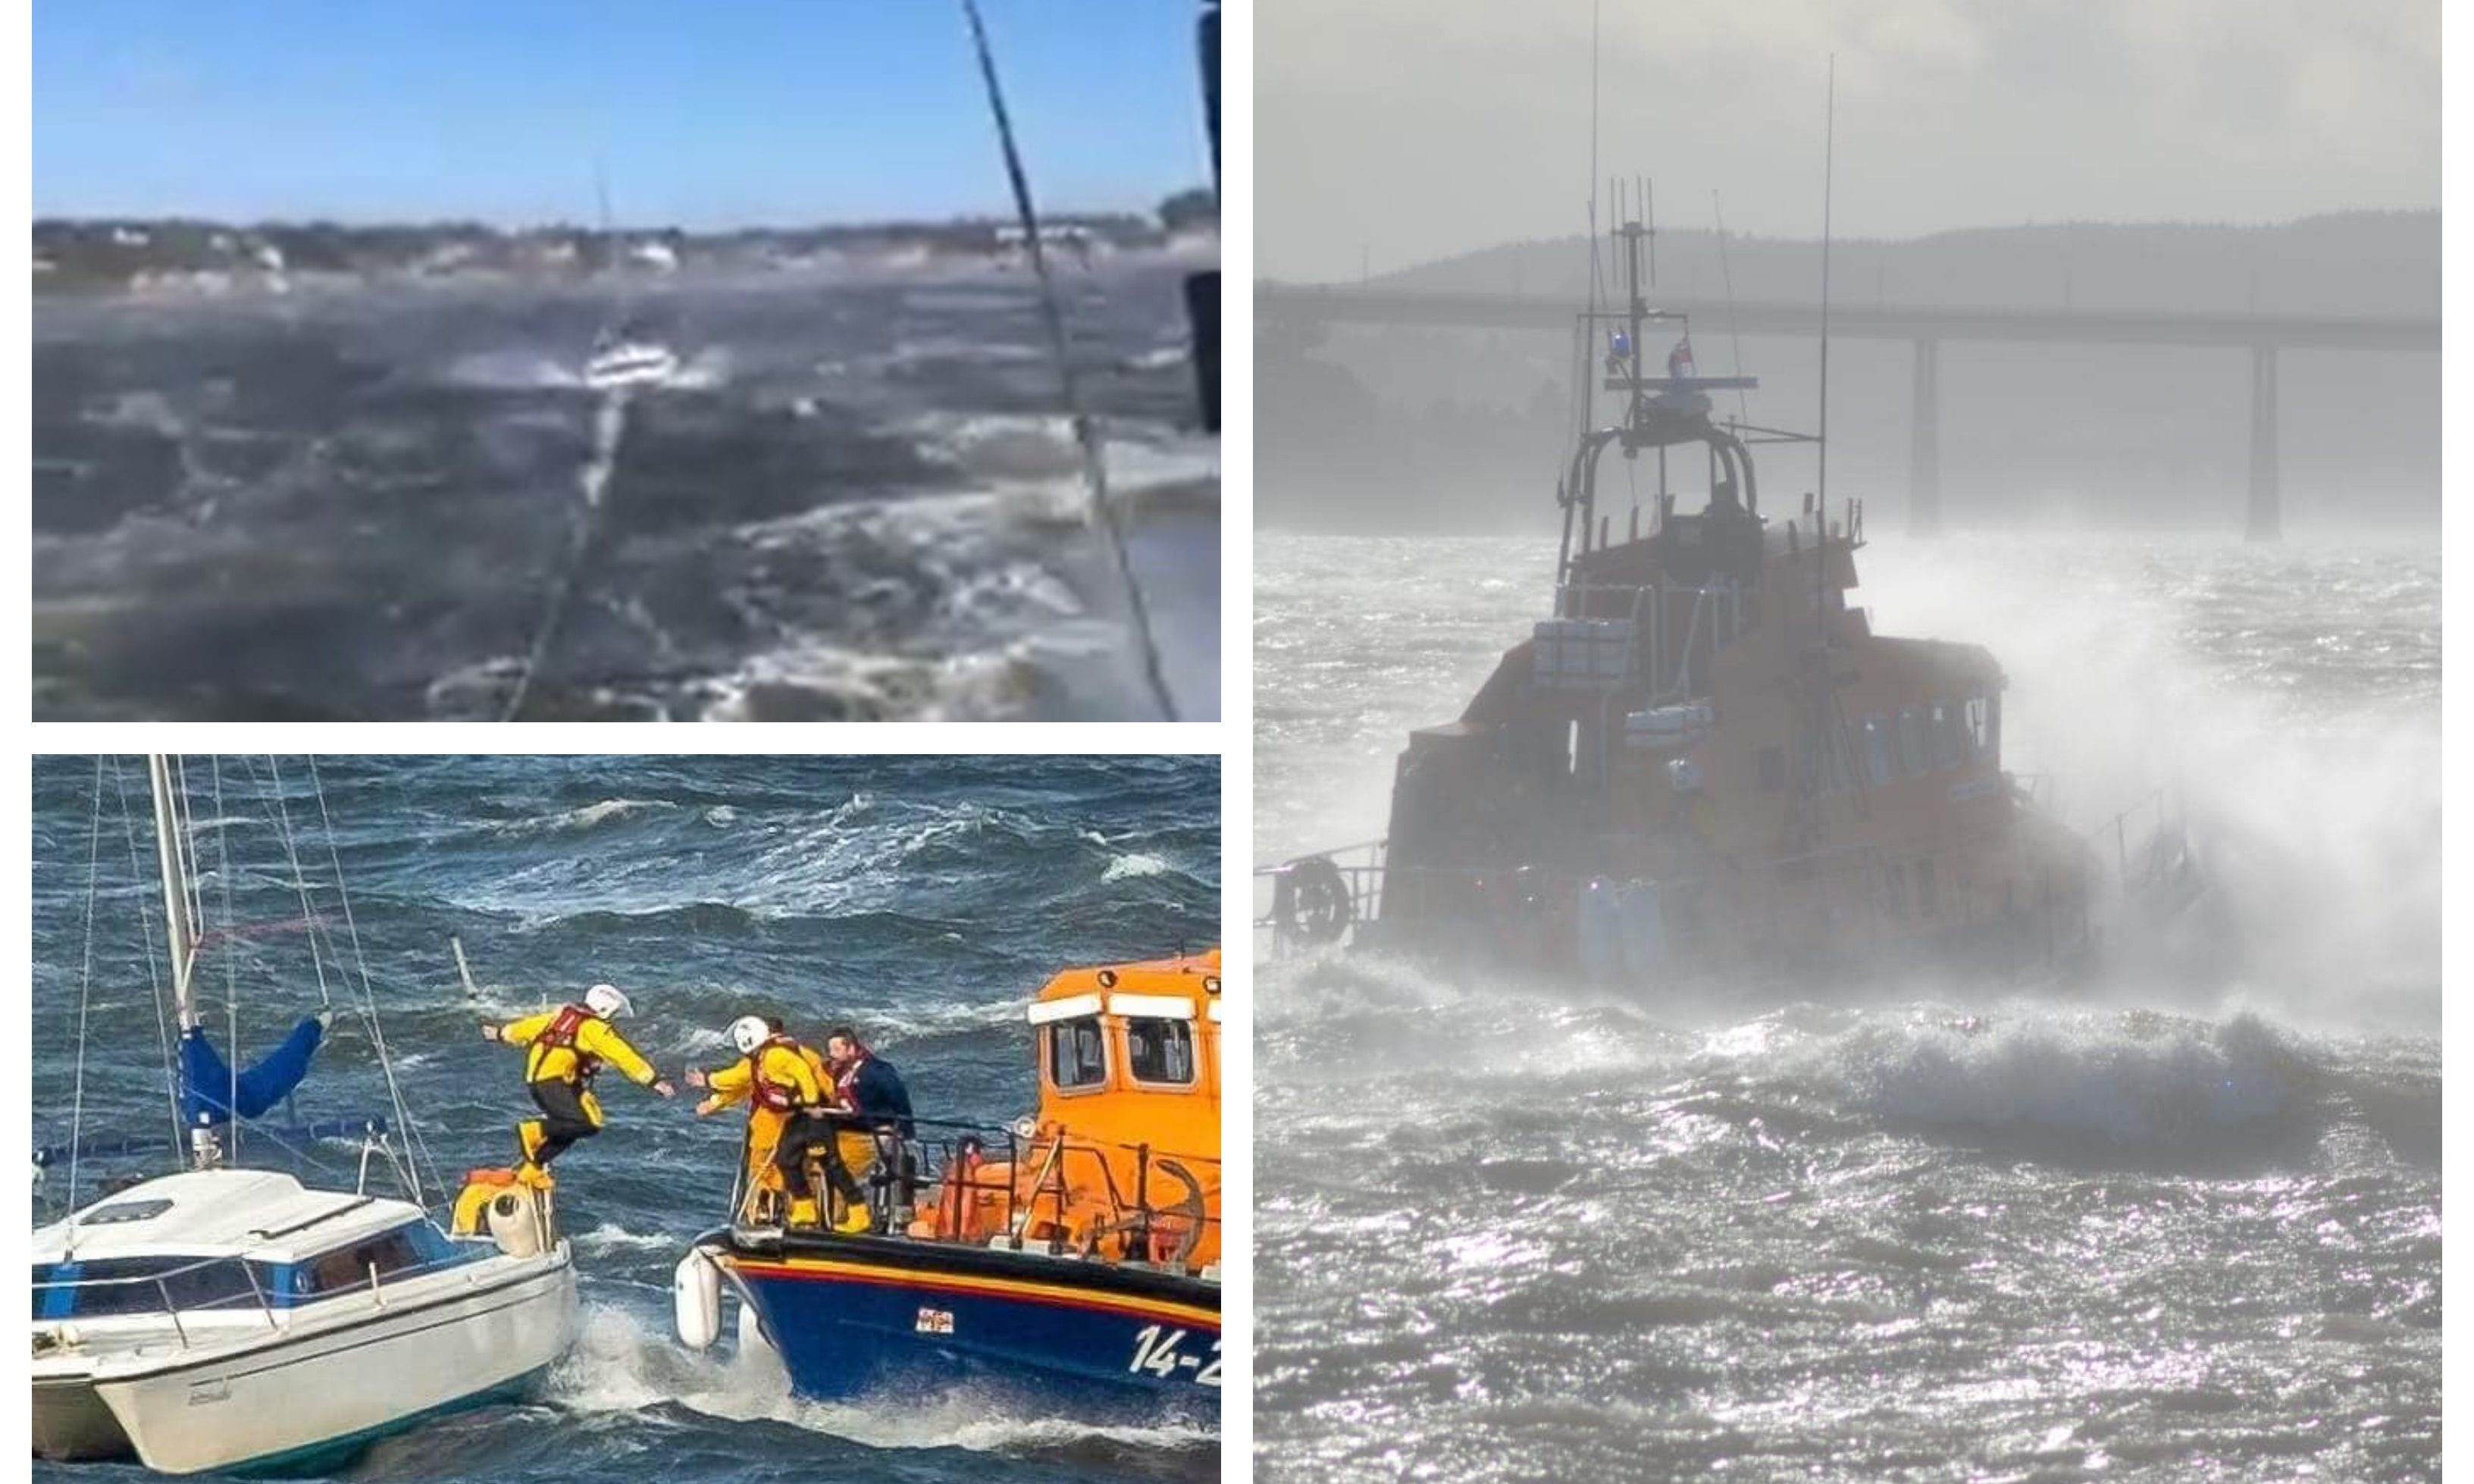 Photos from a busy day for the Broughty Ferry RNLI during Storm Ali.